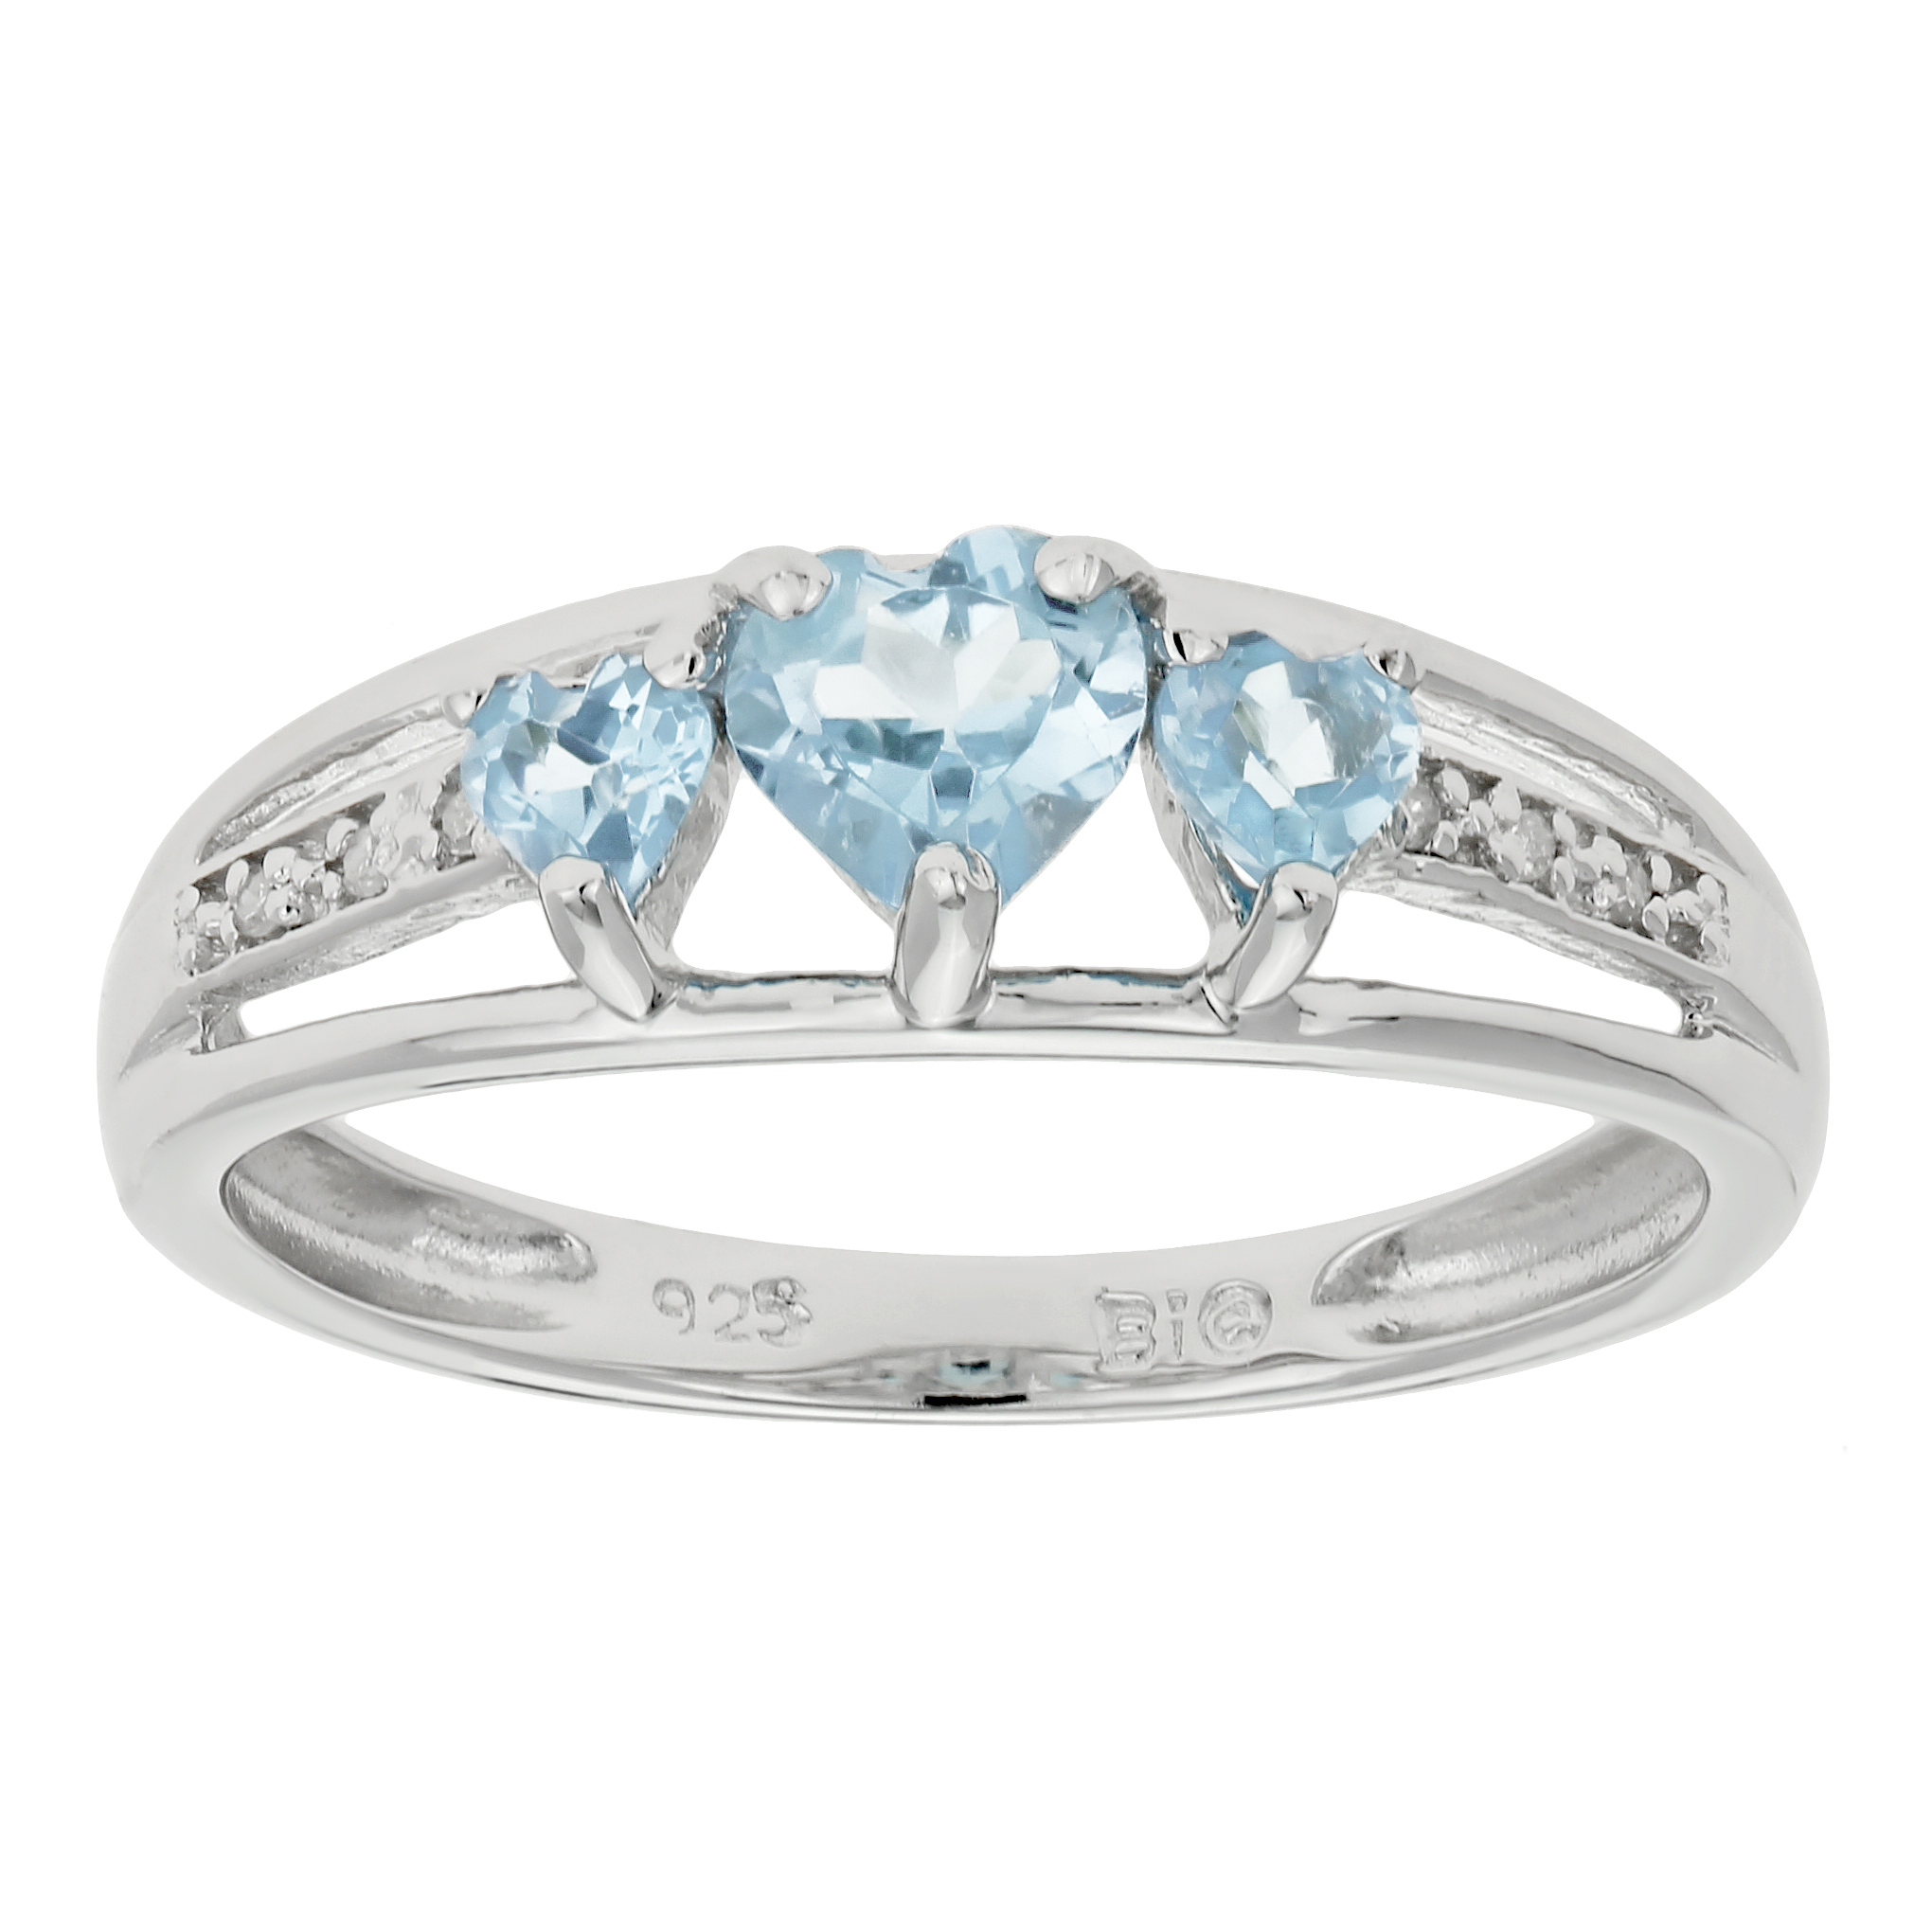 .50 Ct Triple Heart Sky Blue Aquamarine White Topaz 925 Sterling Silver Ring by Metro Jewelry